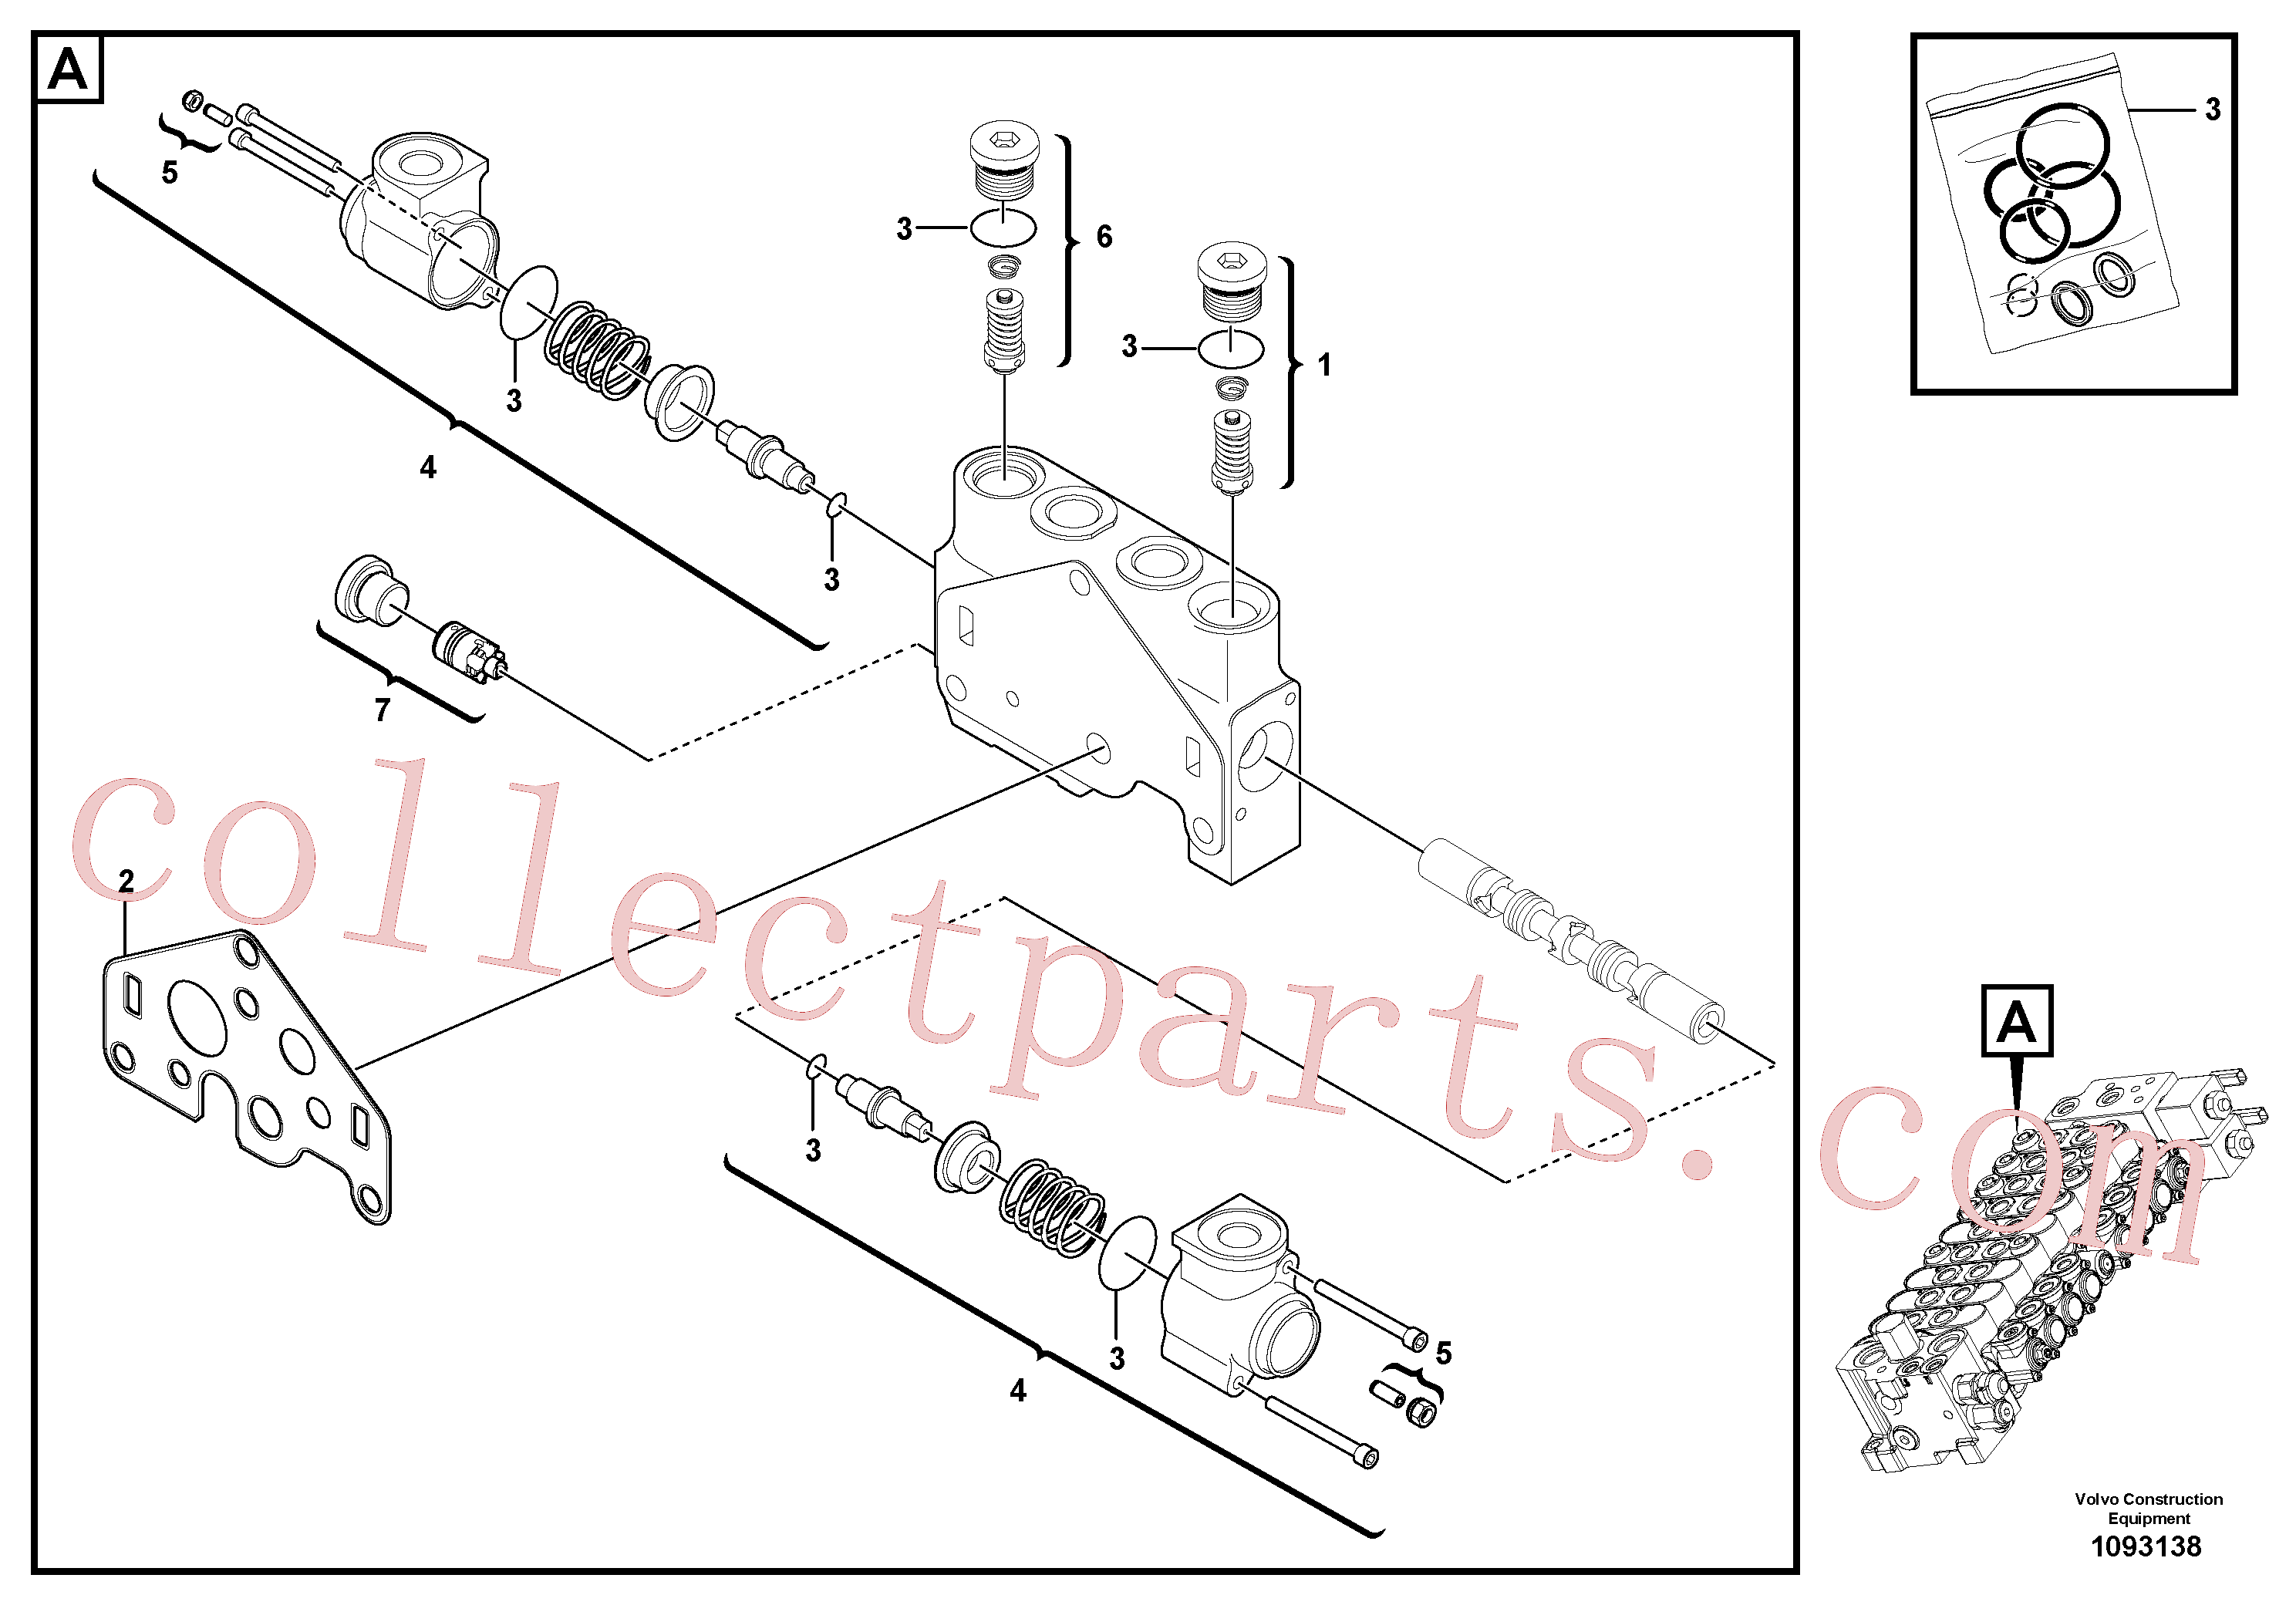 VOE11710929 for Volvo Valve section(1093138 assembly)